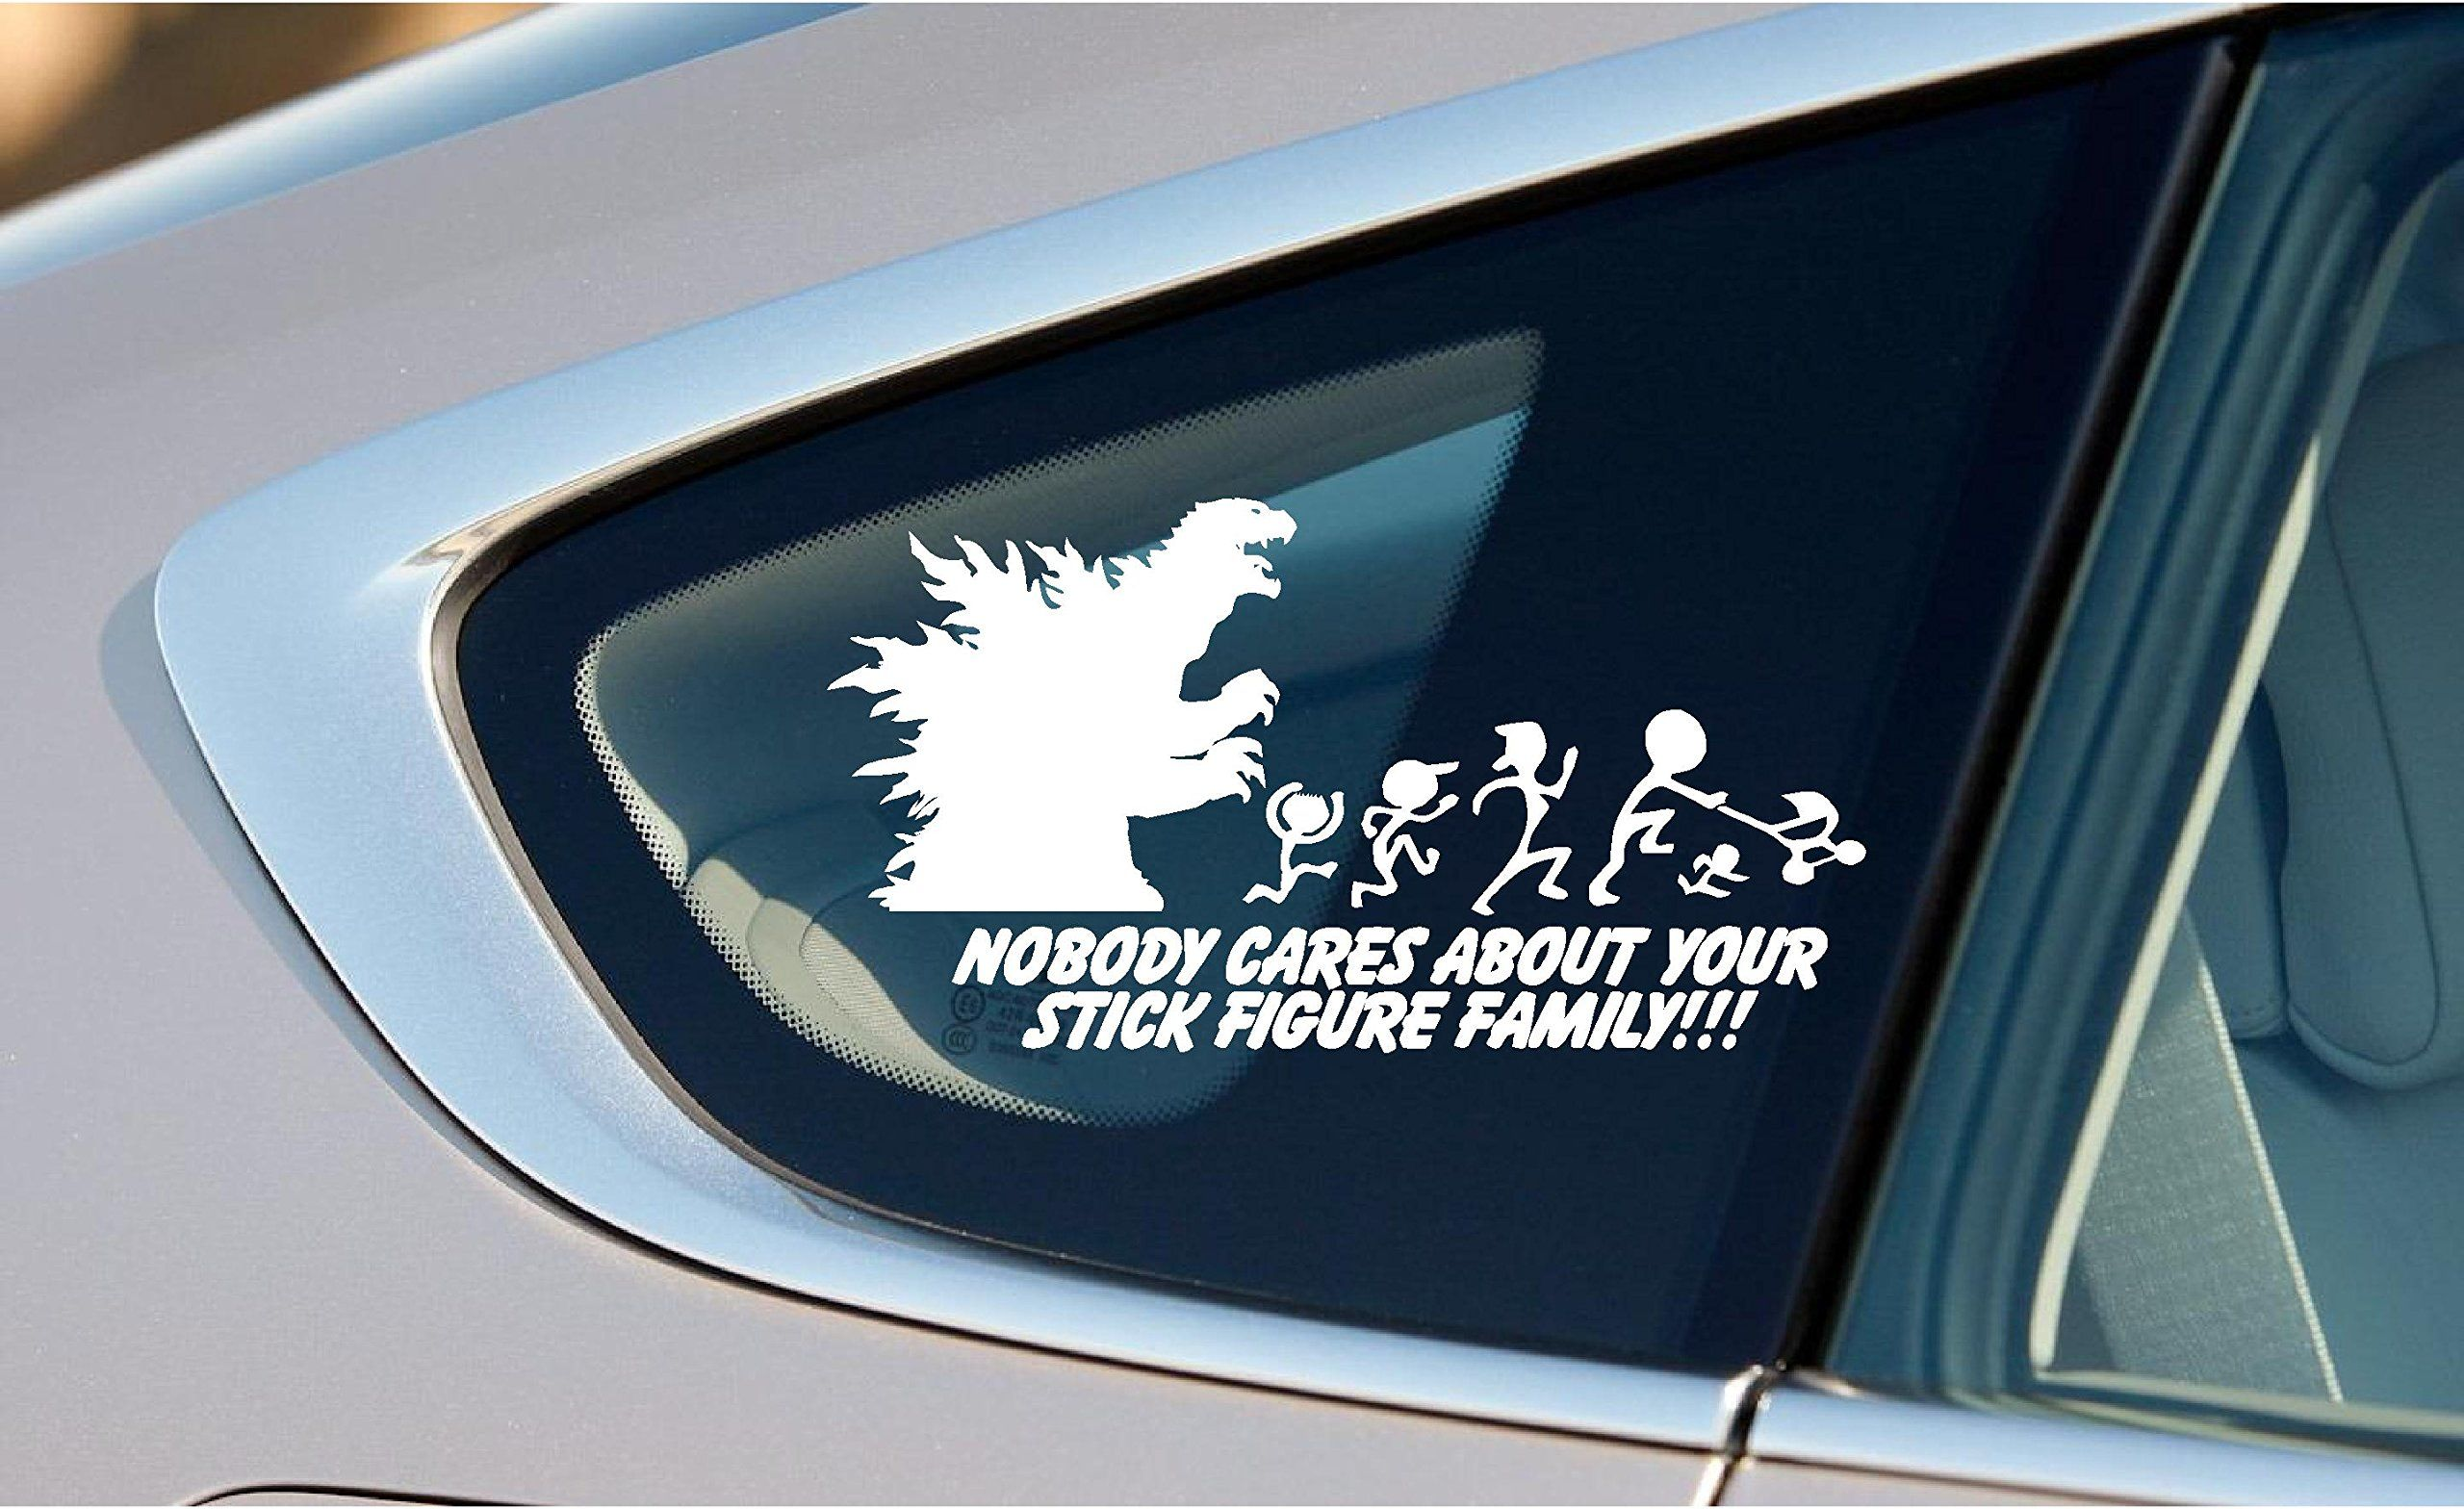 Nobody Cares About Your Stick Figure Family Godzilla X Inches - Vinyl decals for your caramazoncom your stick family was delicious trex vinyl decal